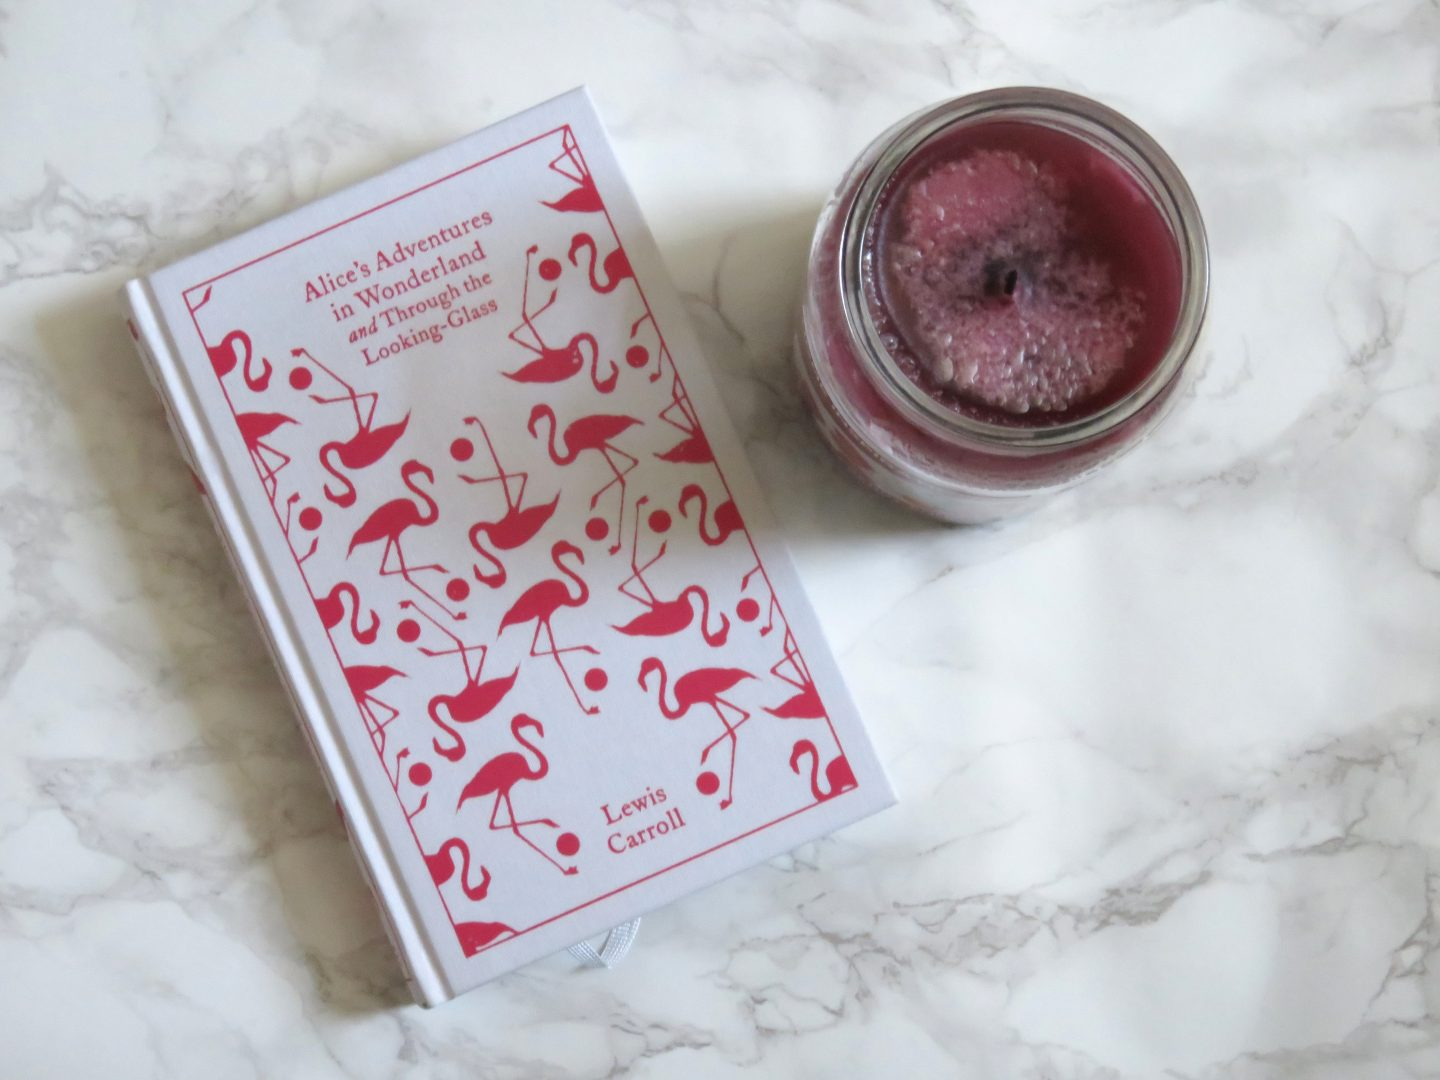 alice's adventures in wonderland penguin classics